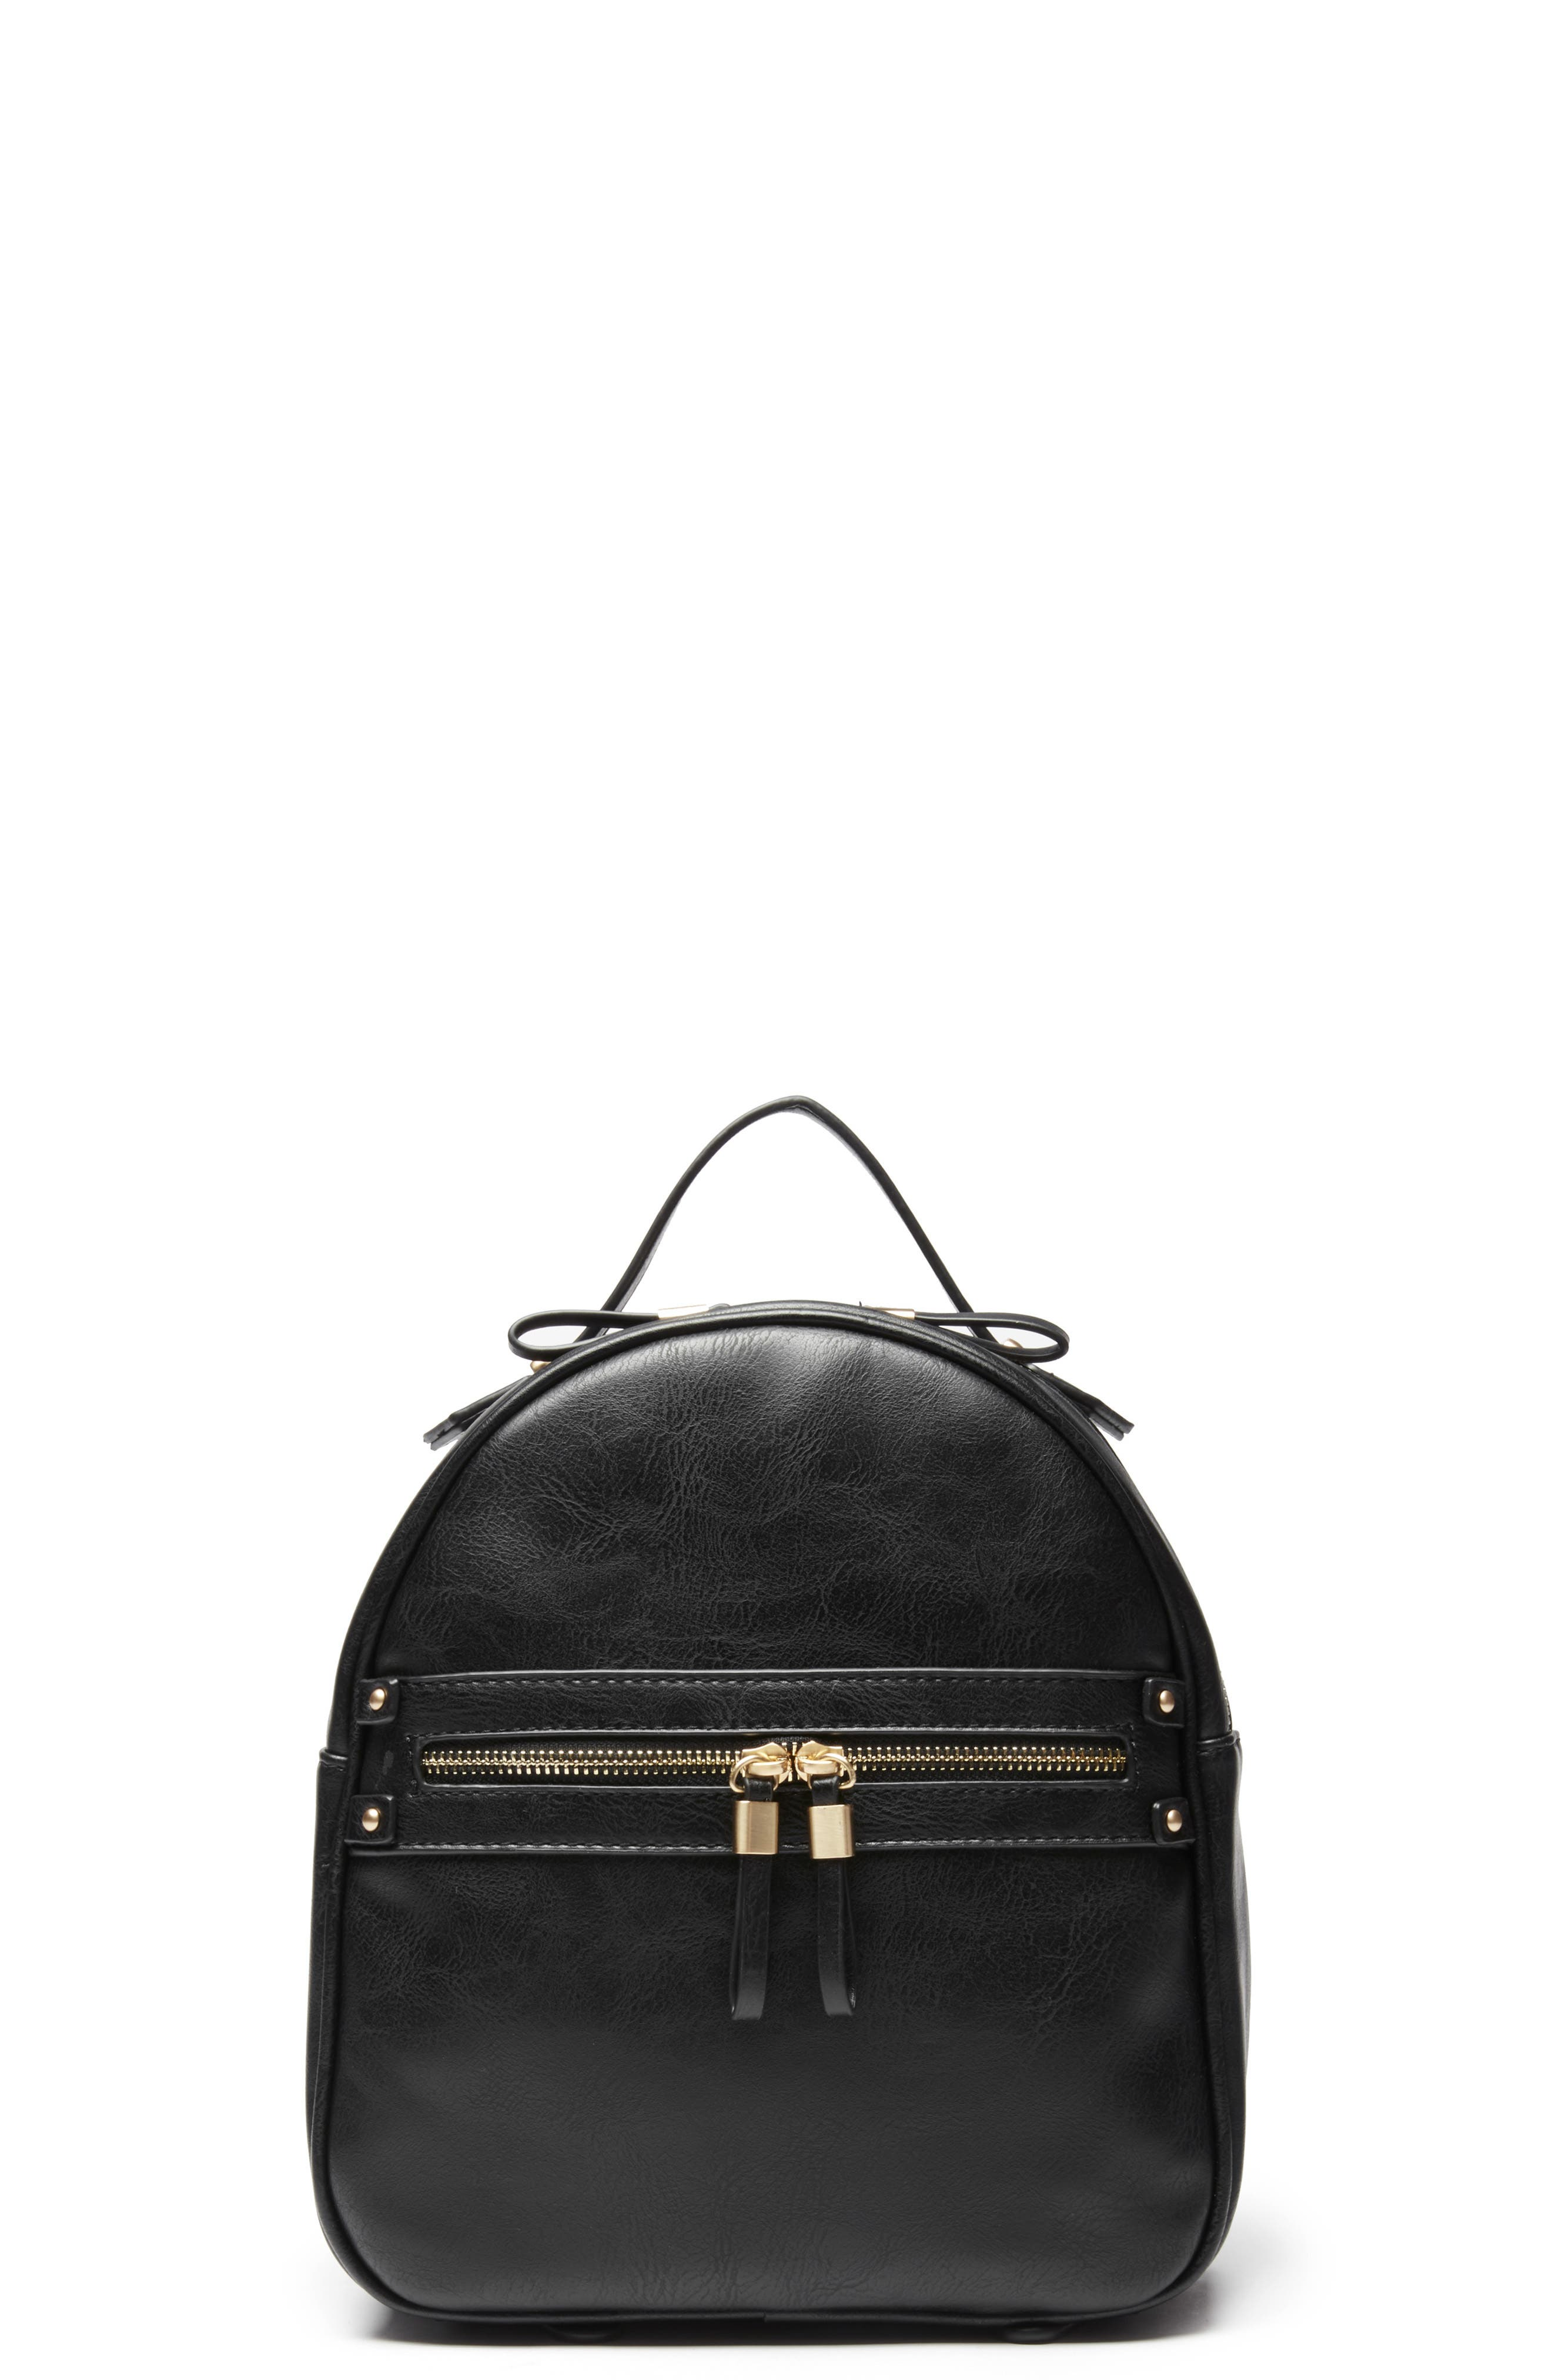 Zypa Faux Leather Backpack,                             Main thumbnail 1, color,                             BLACK